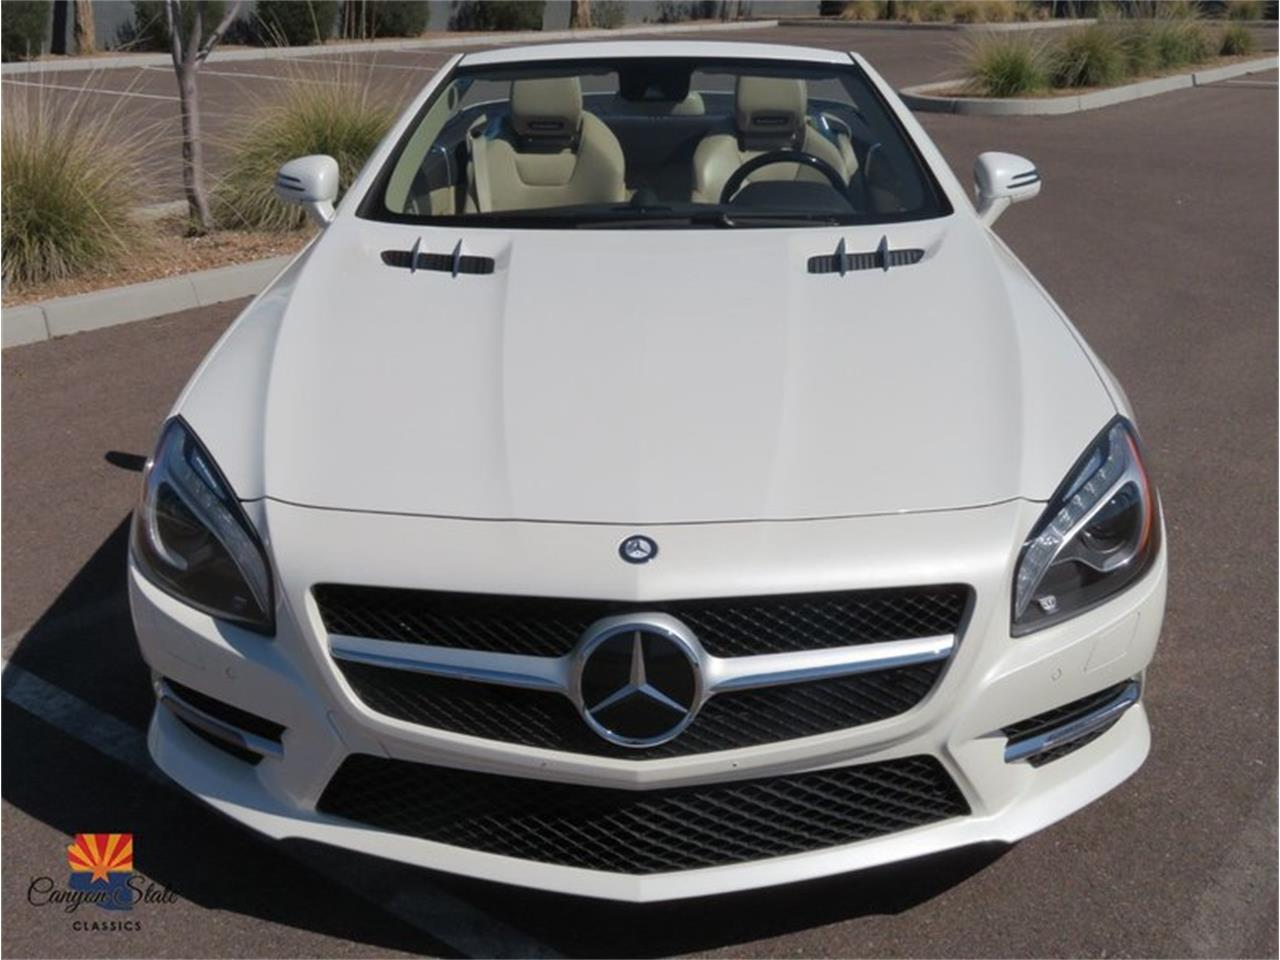 2013 Mercedes-Benz SL-Class for sale in Tempe, AZ – photo 31